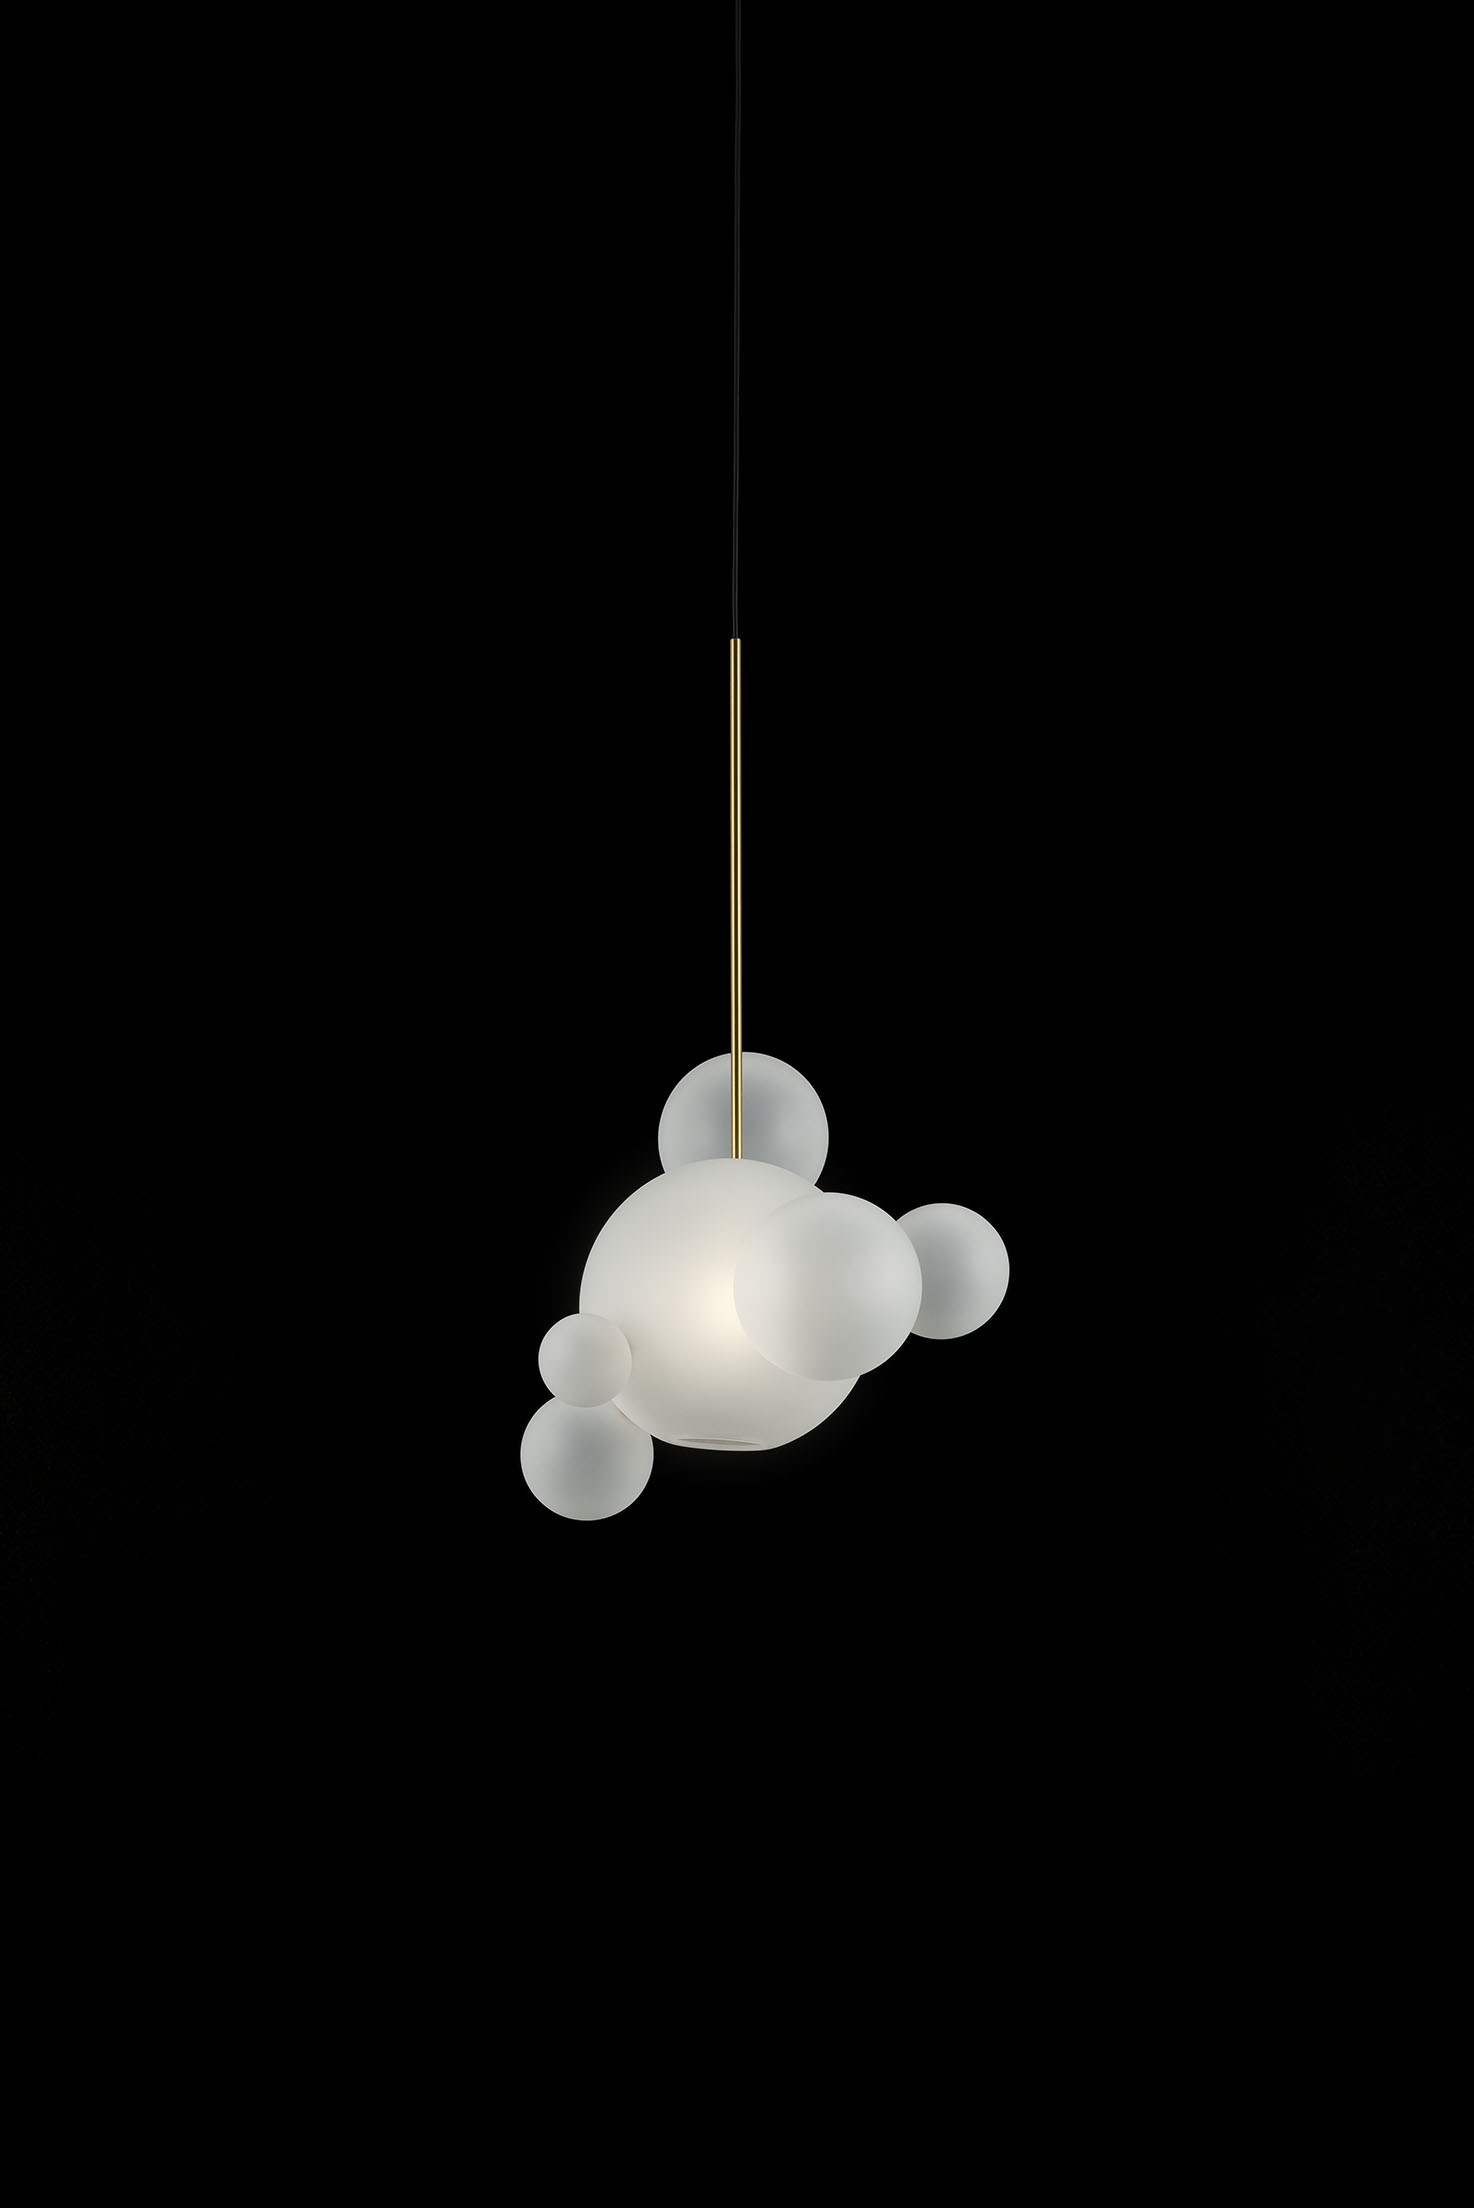 Giopato_Coombes_Bolle_Frosted_Pendant_06_Bubbles_Ph_FedericoVilla.jpg